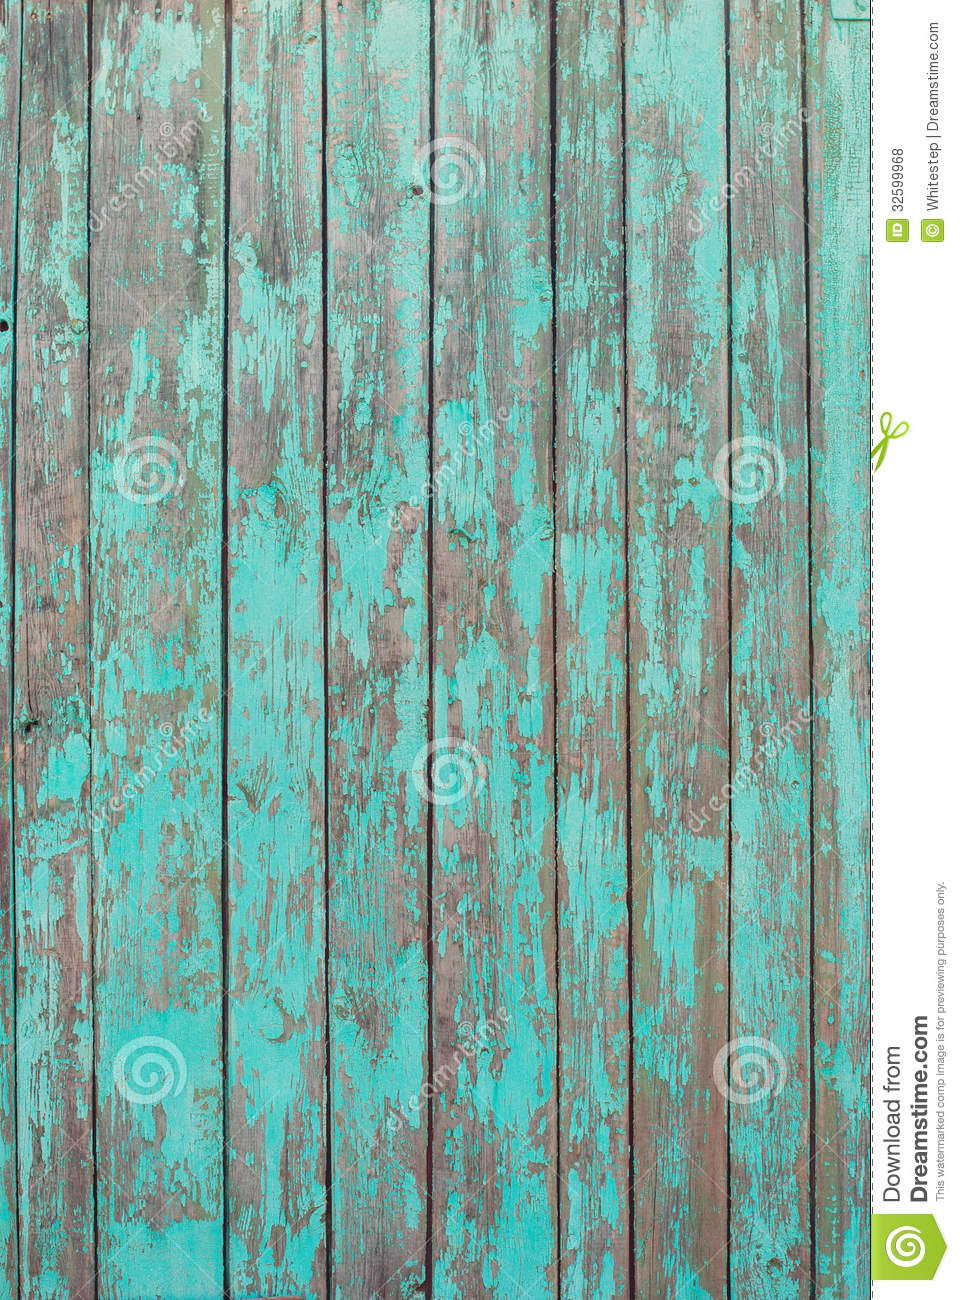 Old Wooden Planks With Cracked Paint Texture Stock Photo Image of